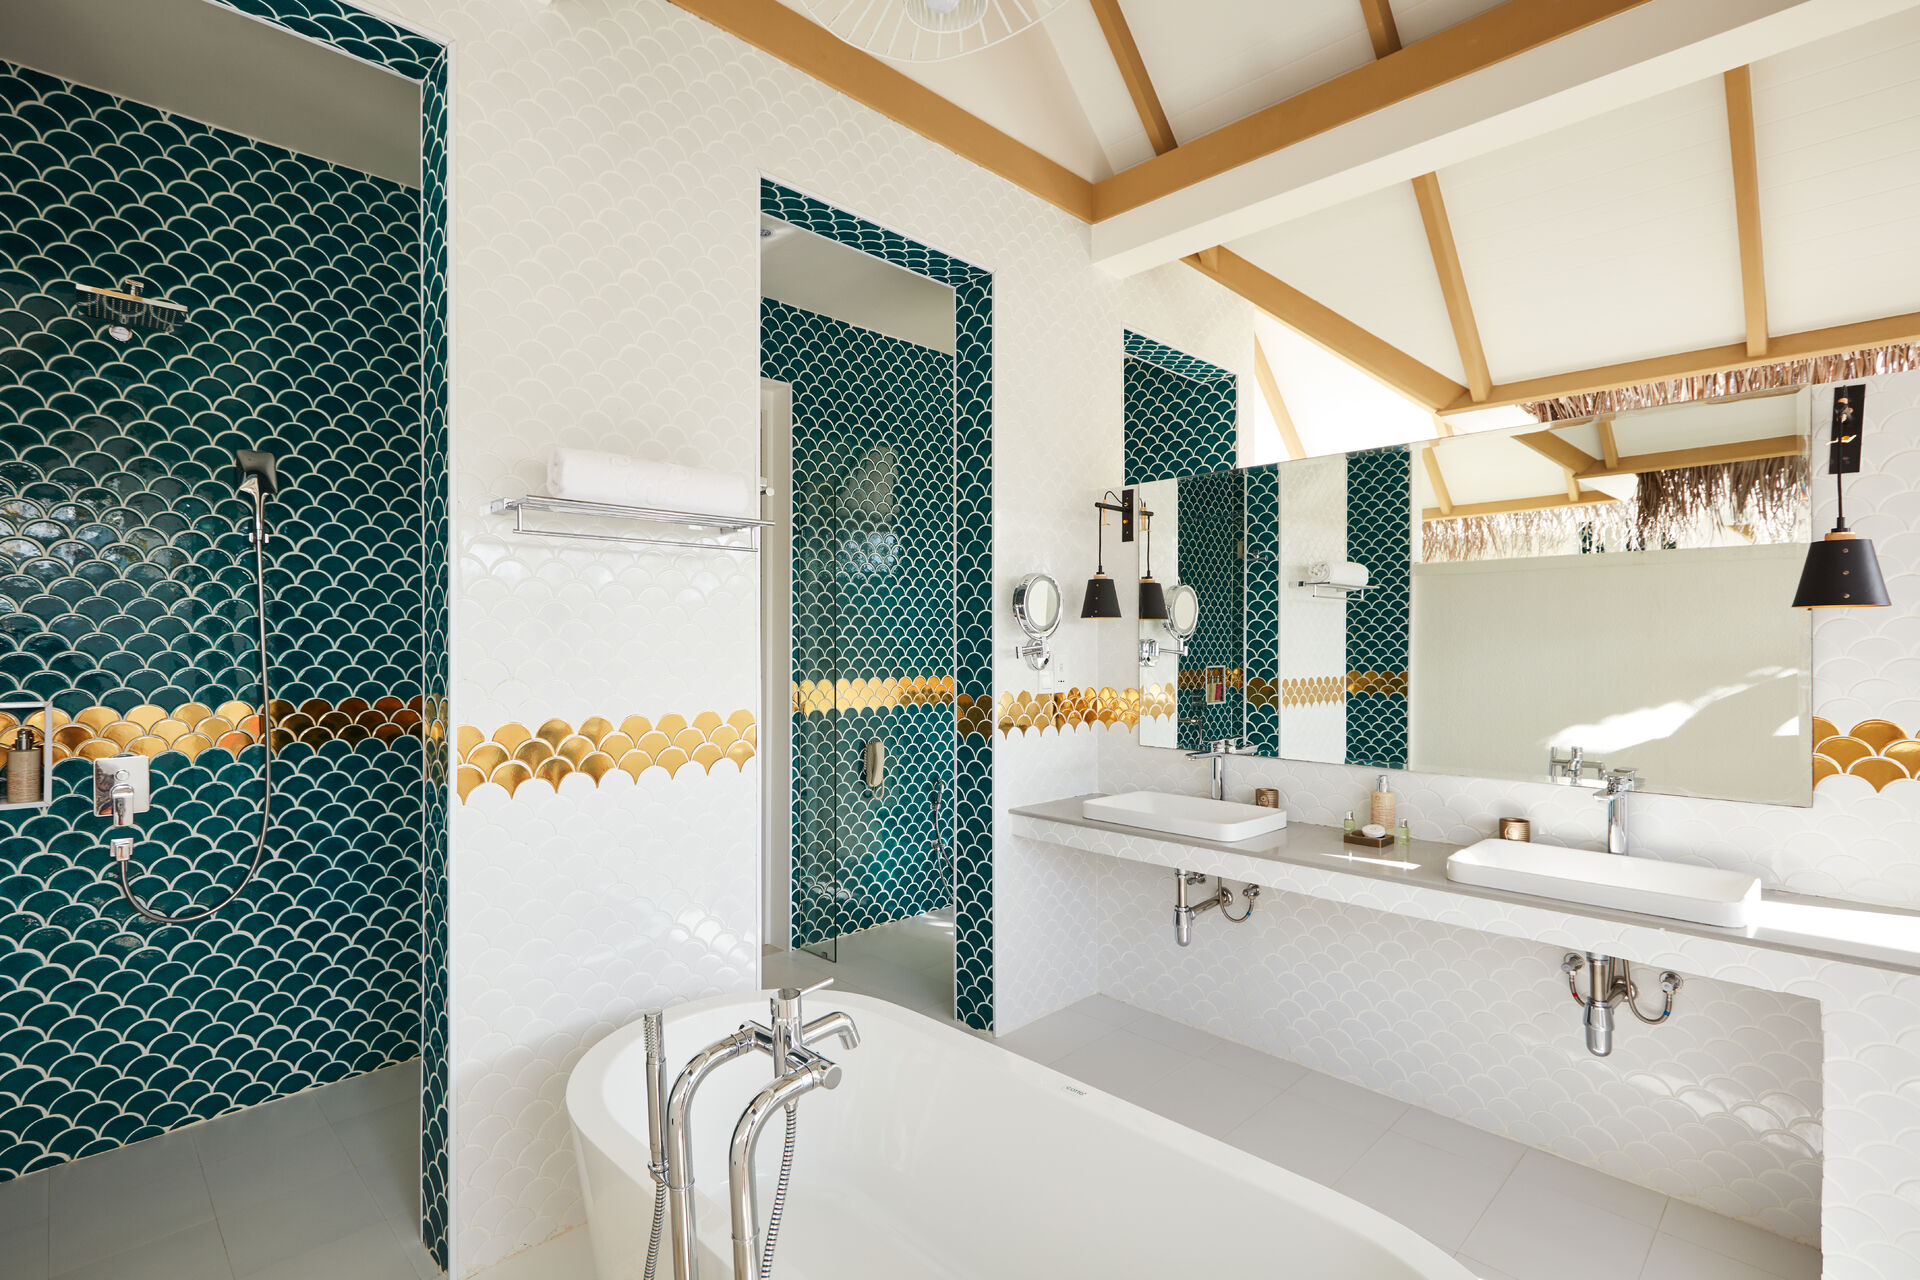 https://cms.satur.sk/data/imgs/tour_image/orig/iruveli_beach_suite_with_pool-1939695.jpg